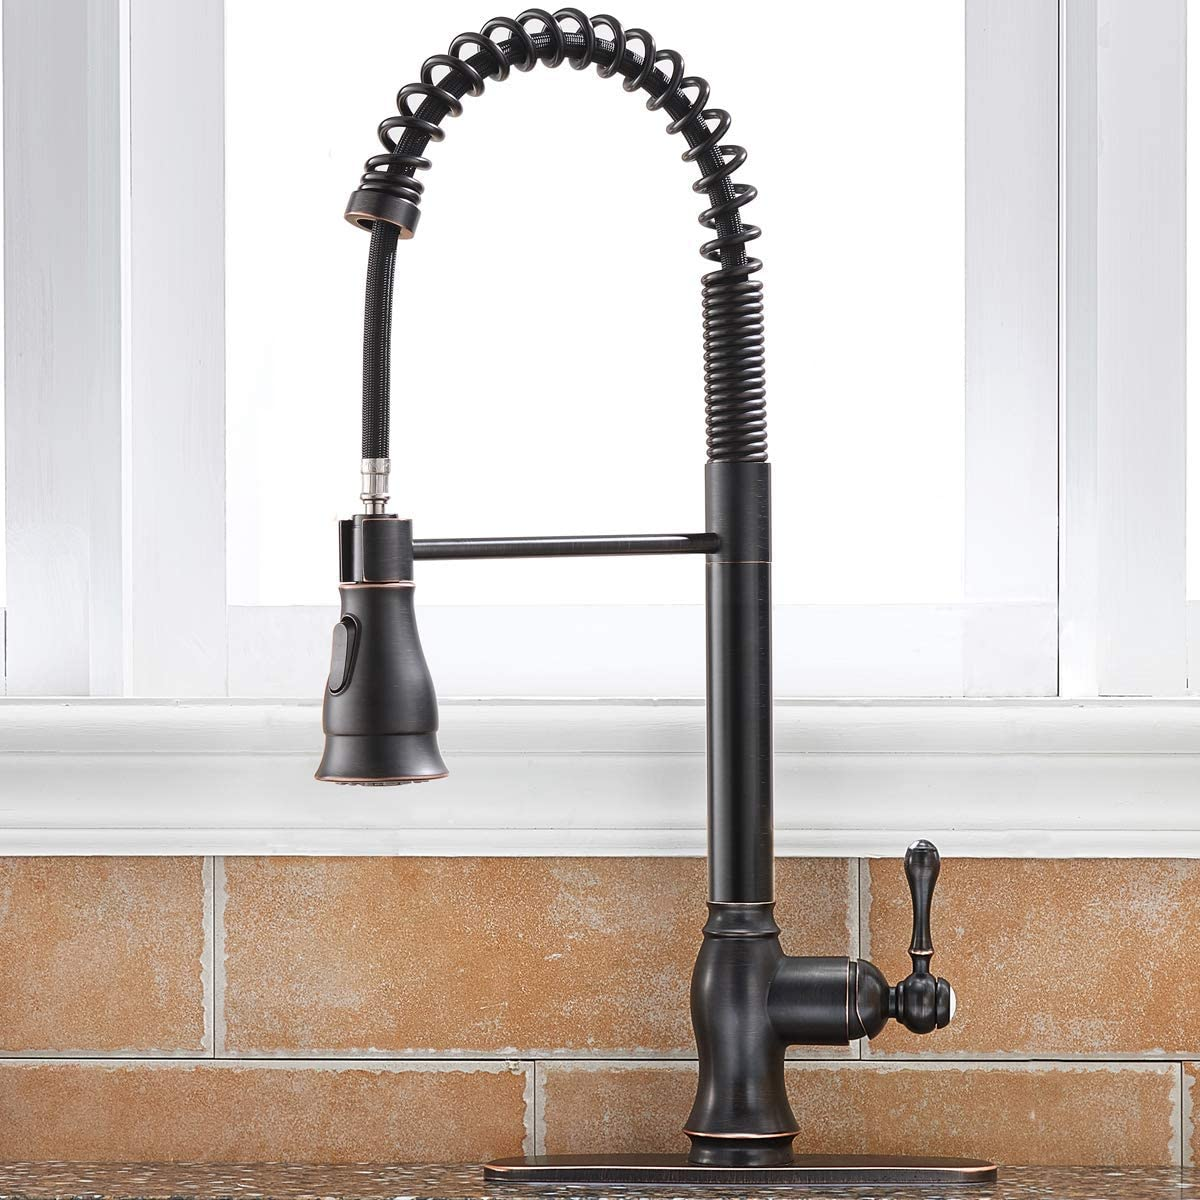 Buy Single Handle Kitchen Sink Faucet With Hot Cold Water Mixer Cover Plate Online